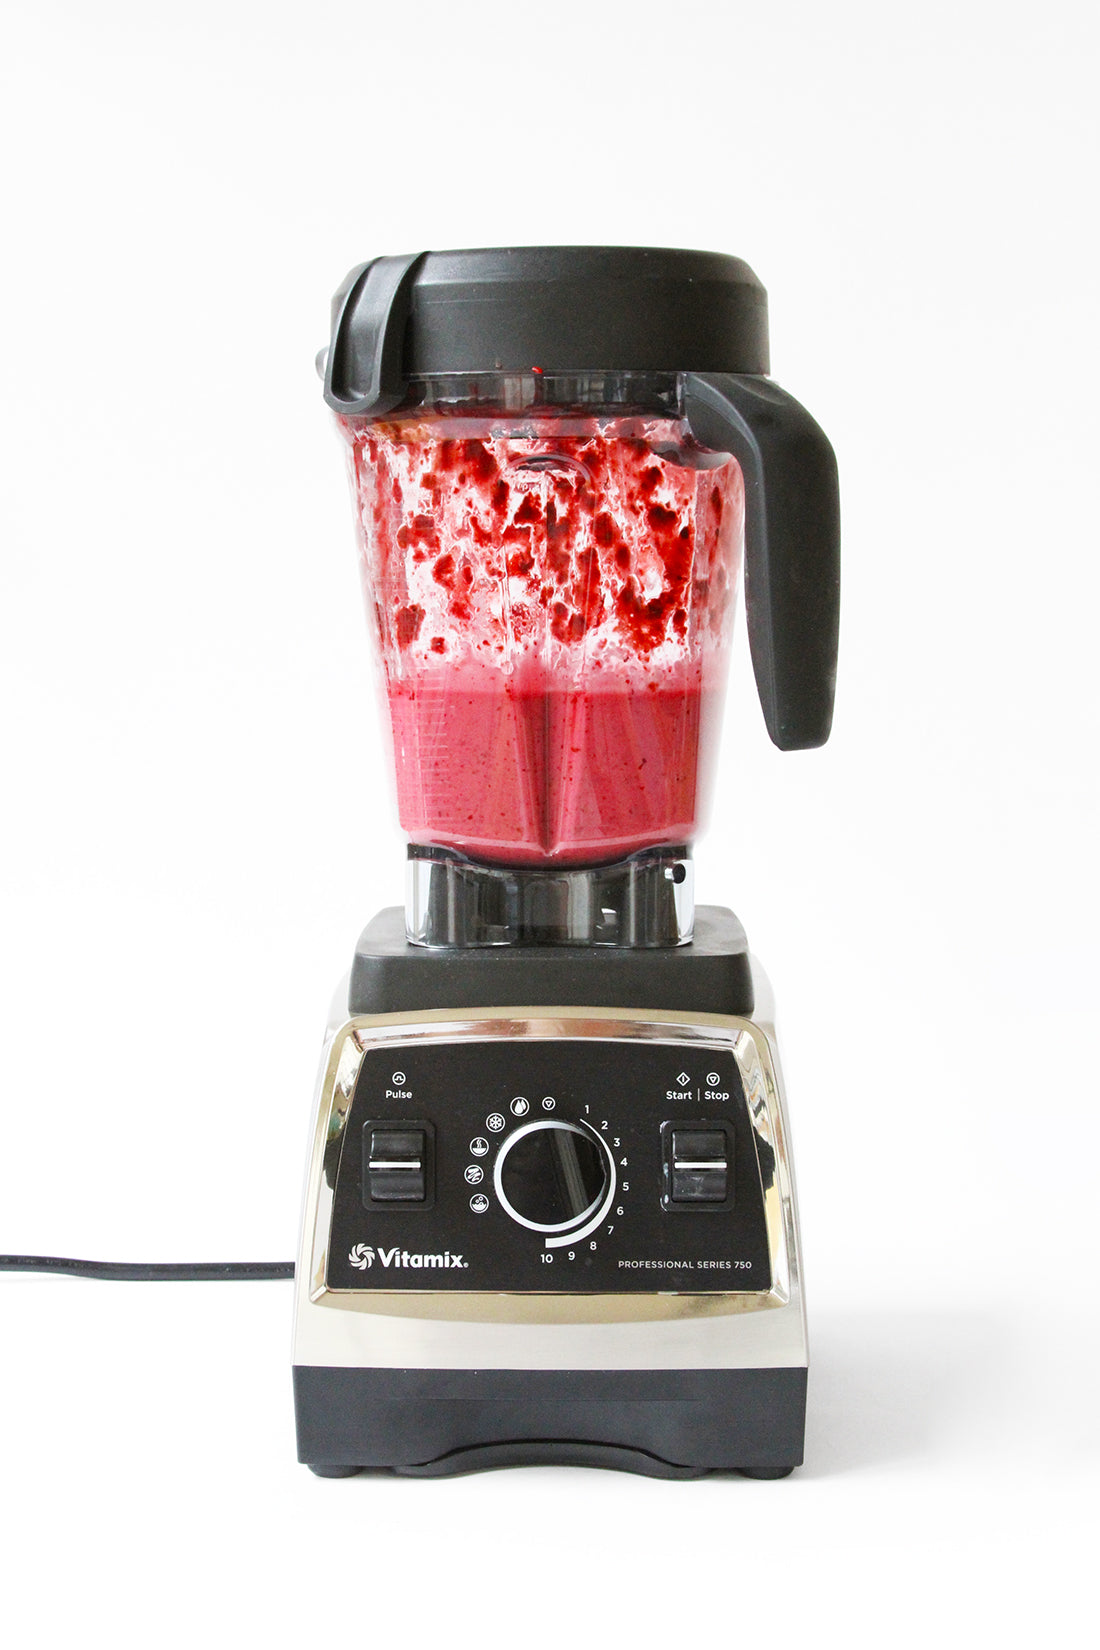 Image of blender with red glaze for Miss Jones Baking Co Blackberry Buttermilk Donuts